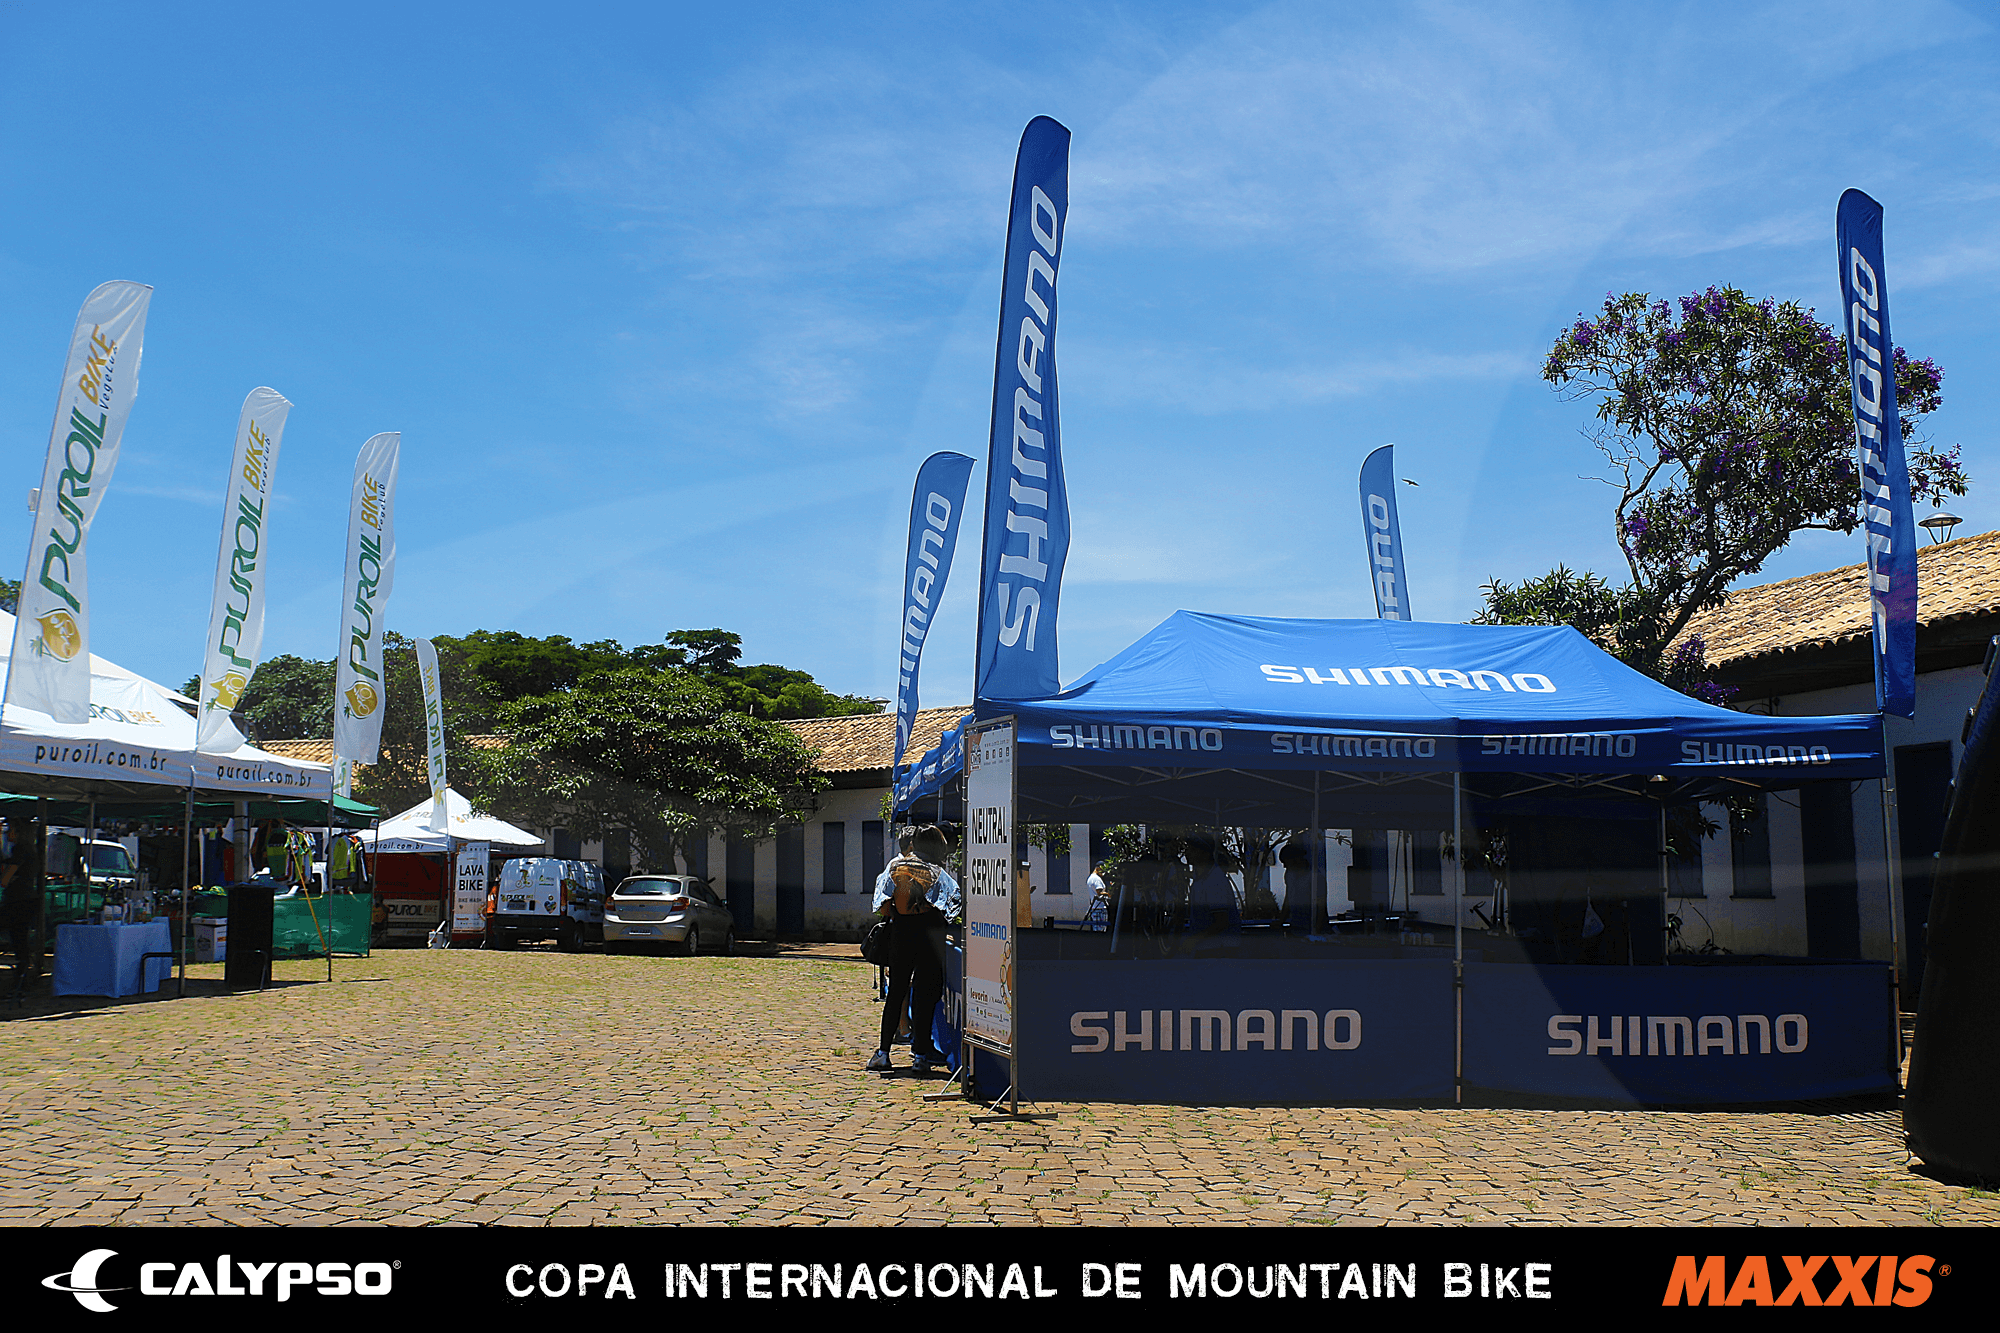 Copa Internacional de Moutain Bike - Congonhas - MG